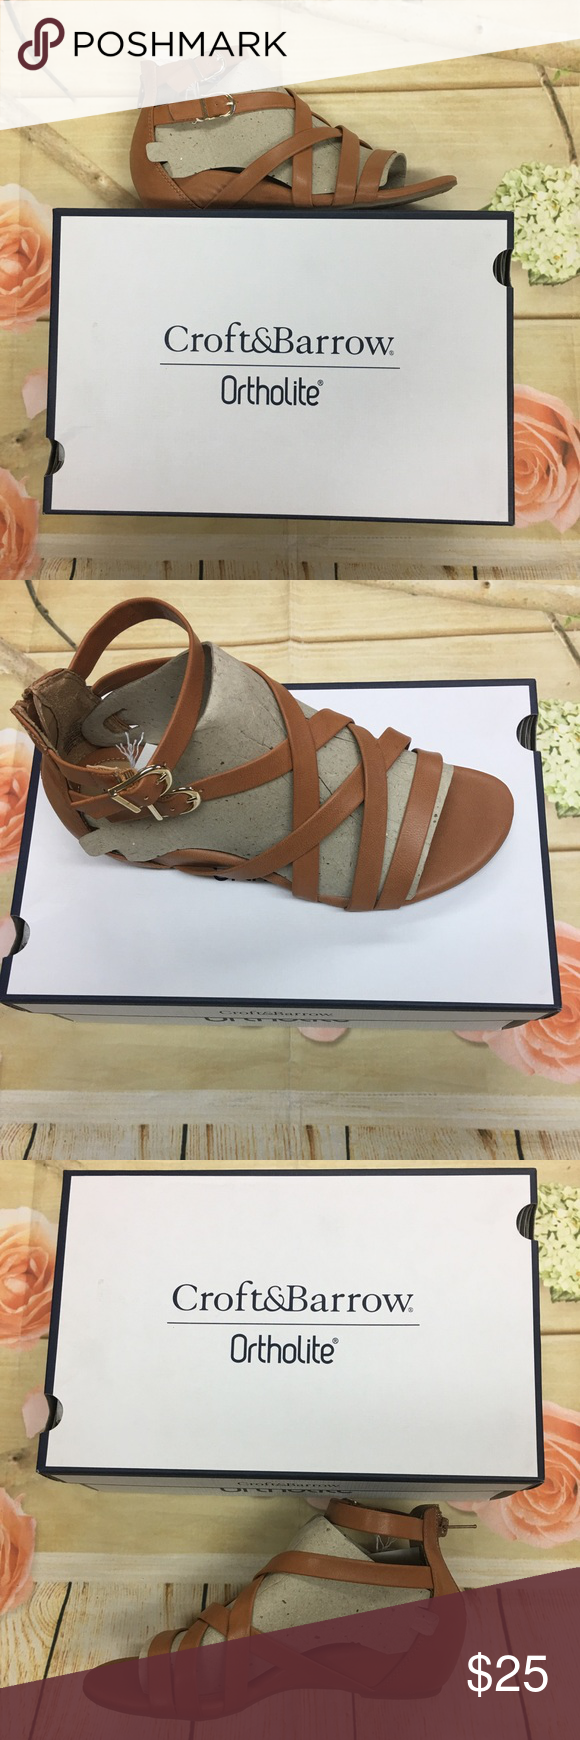 473f603b4053 Croft  amp  Barrow maiden gladiator sandals 7.5WIDE Buckle details  Ortholite technology enables air flow